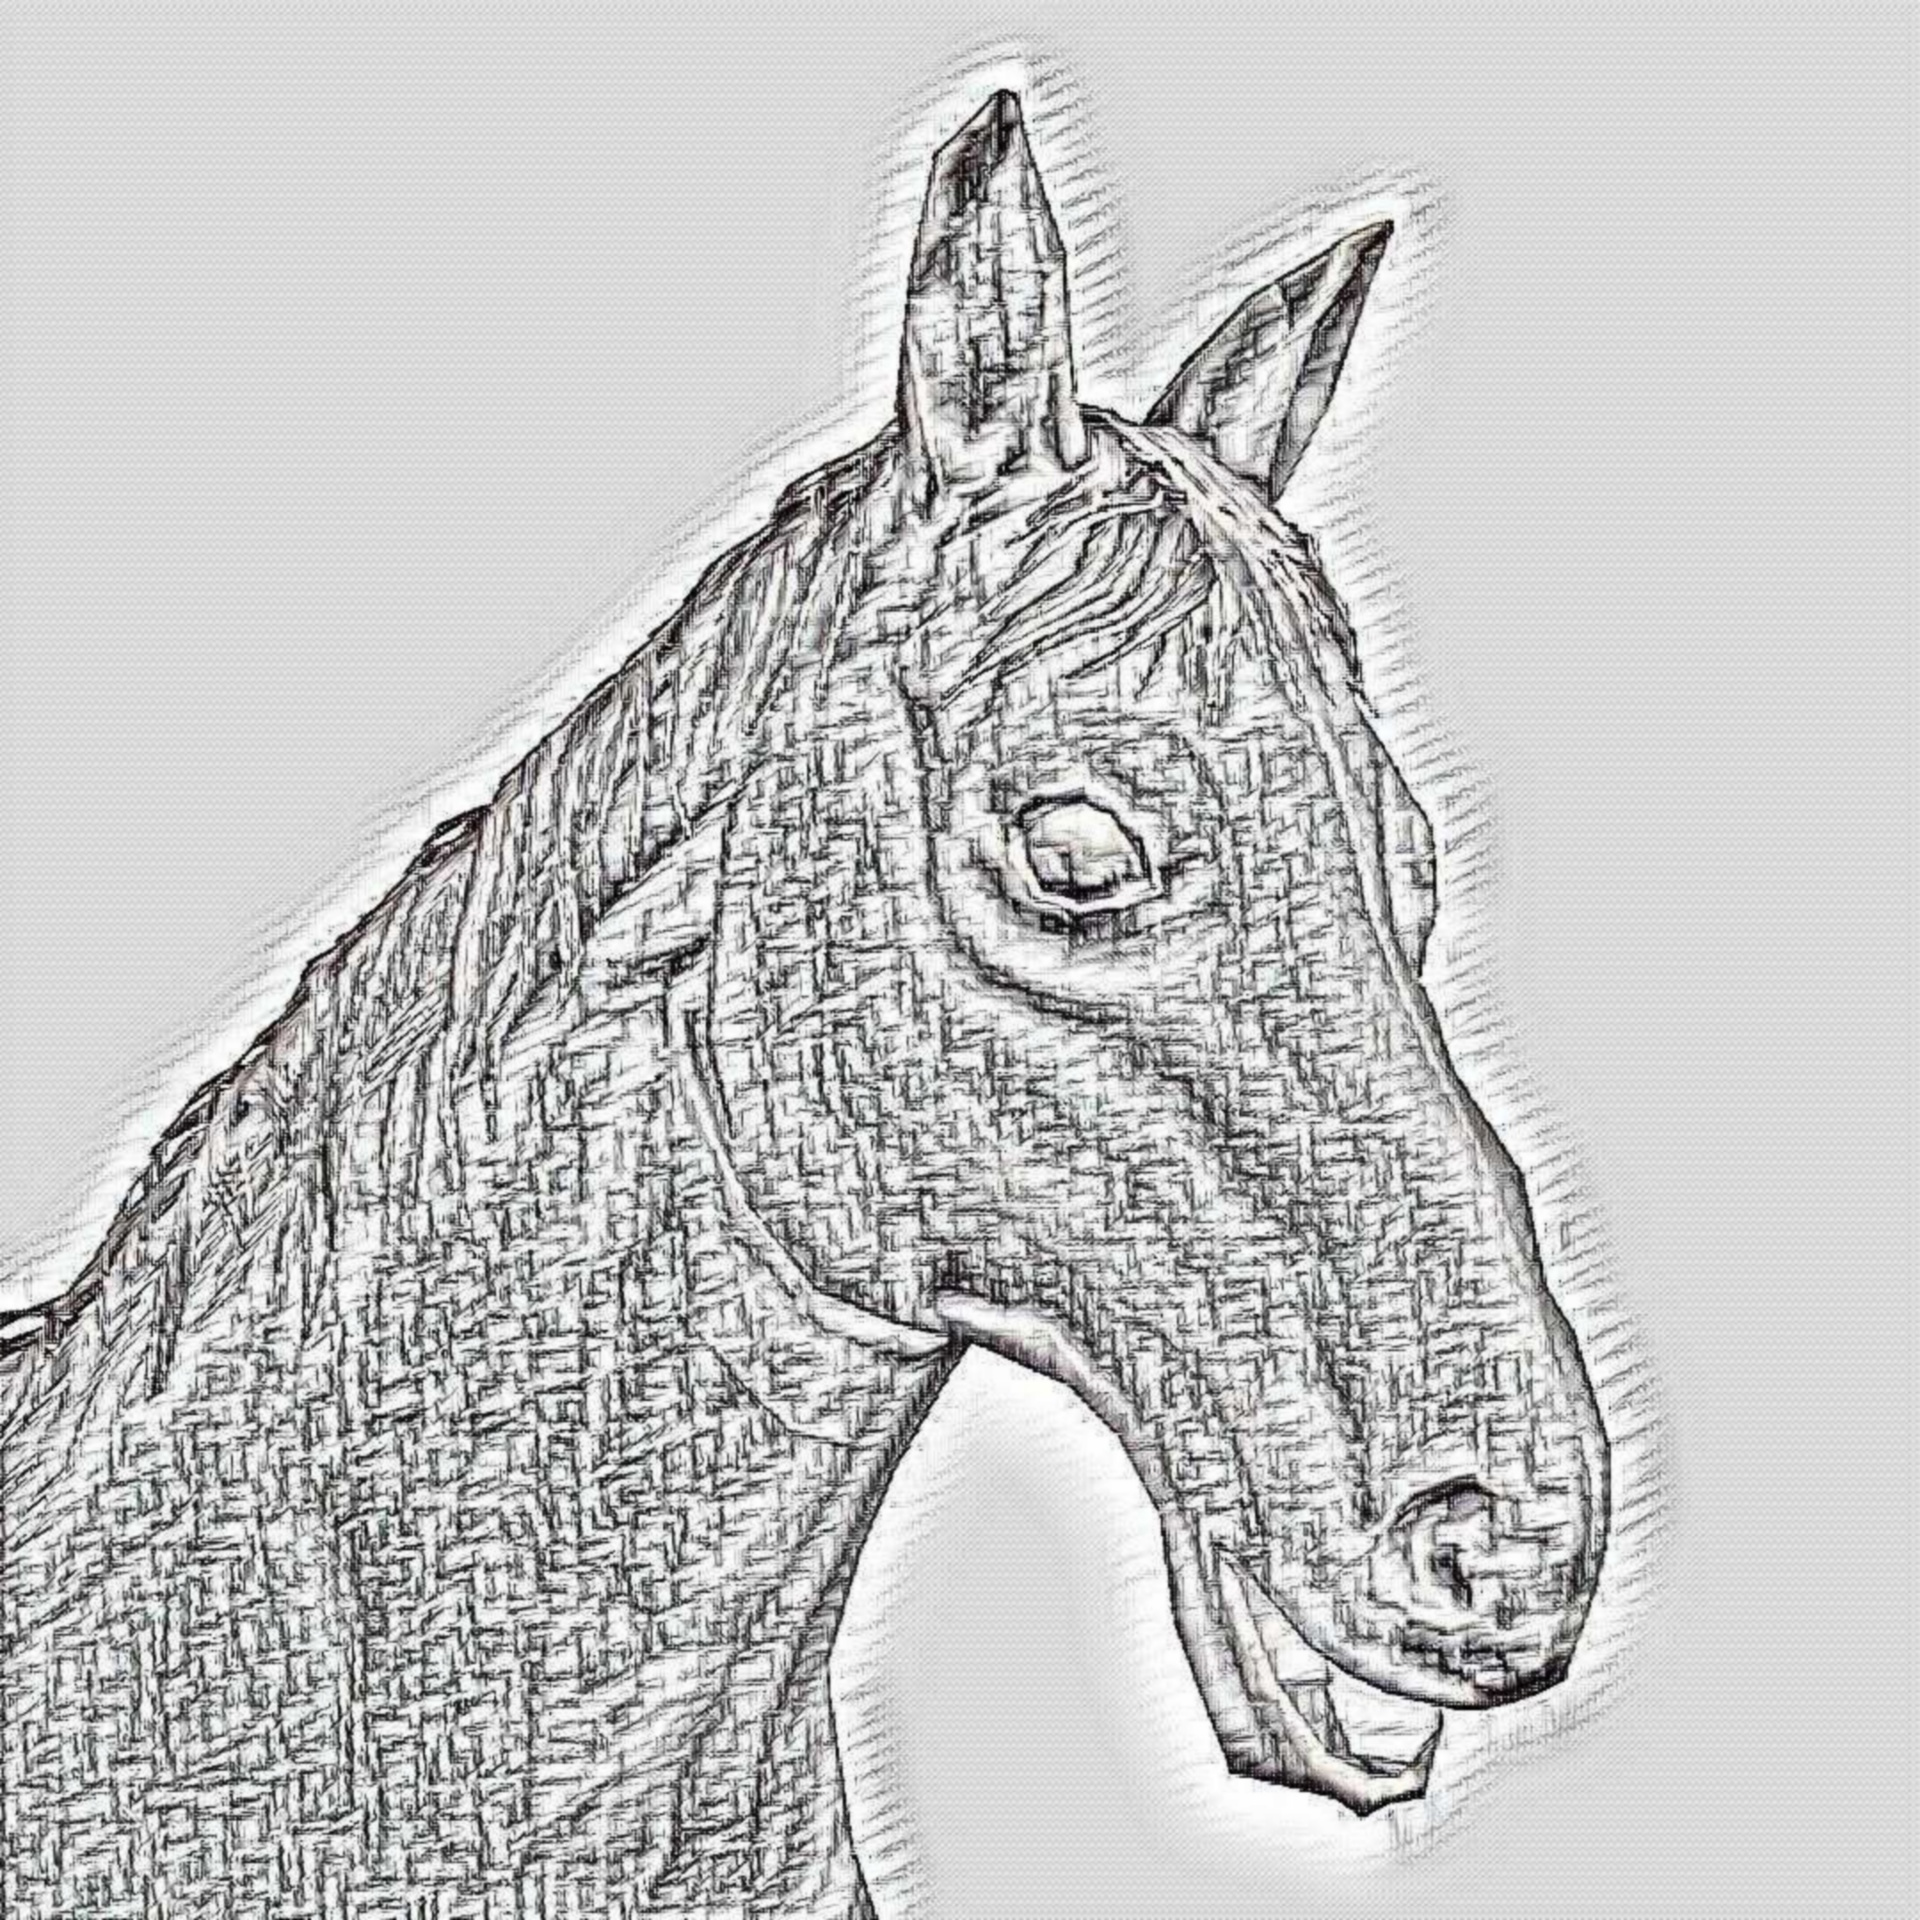 Clydesdale Horse Sketch Pencil Drawing Free Image From Needpix Com